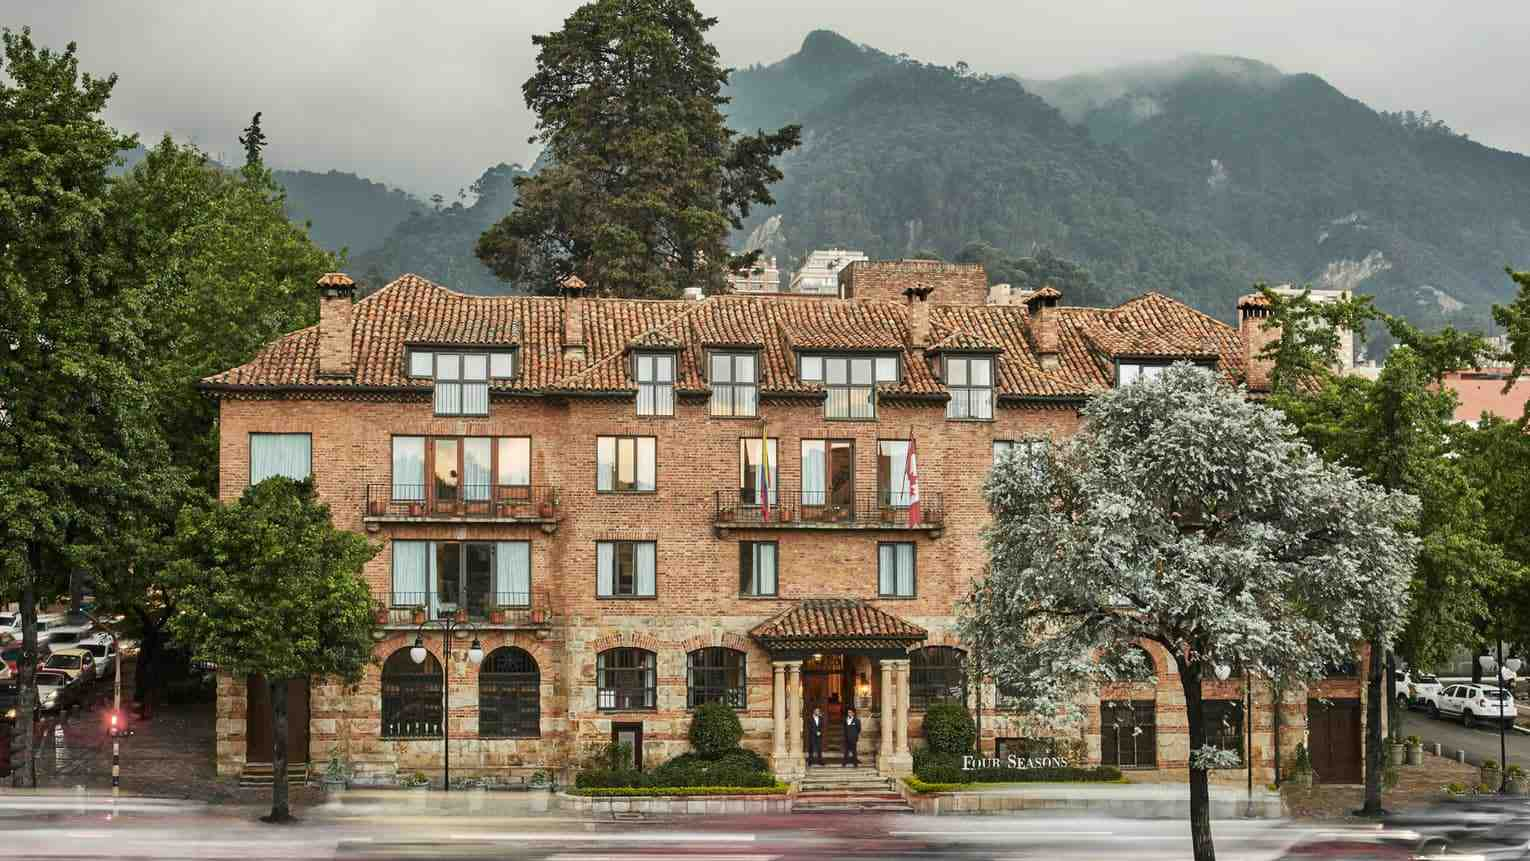 For grandeur and luxury in a gay friendly hotel, don't miss the Four Seasons Casa Medina in Bogota